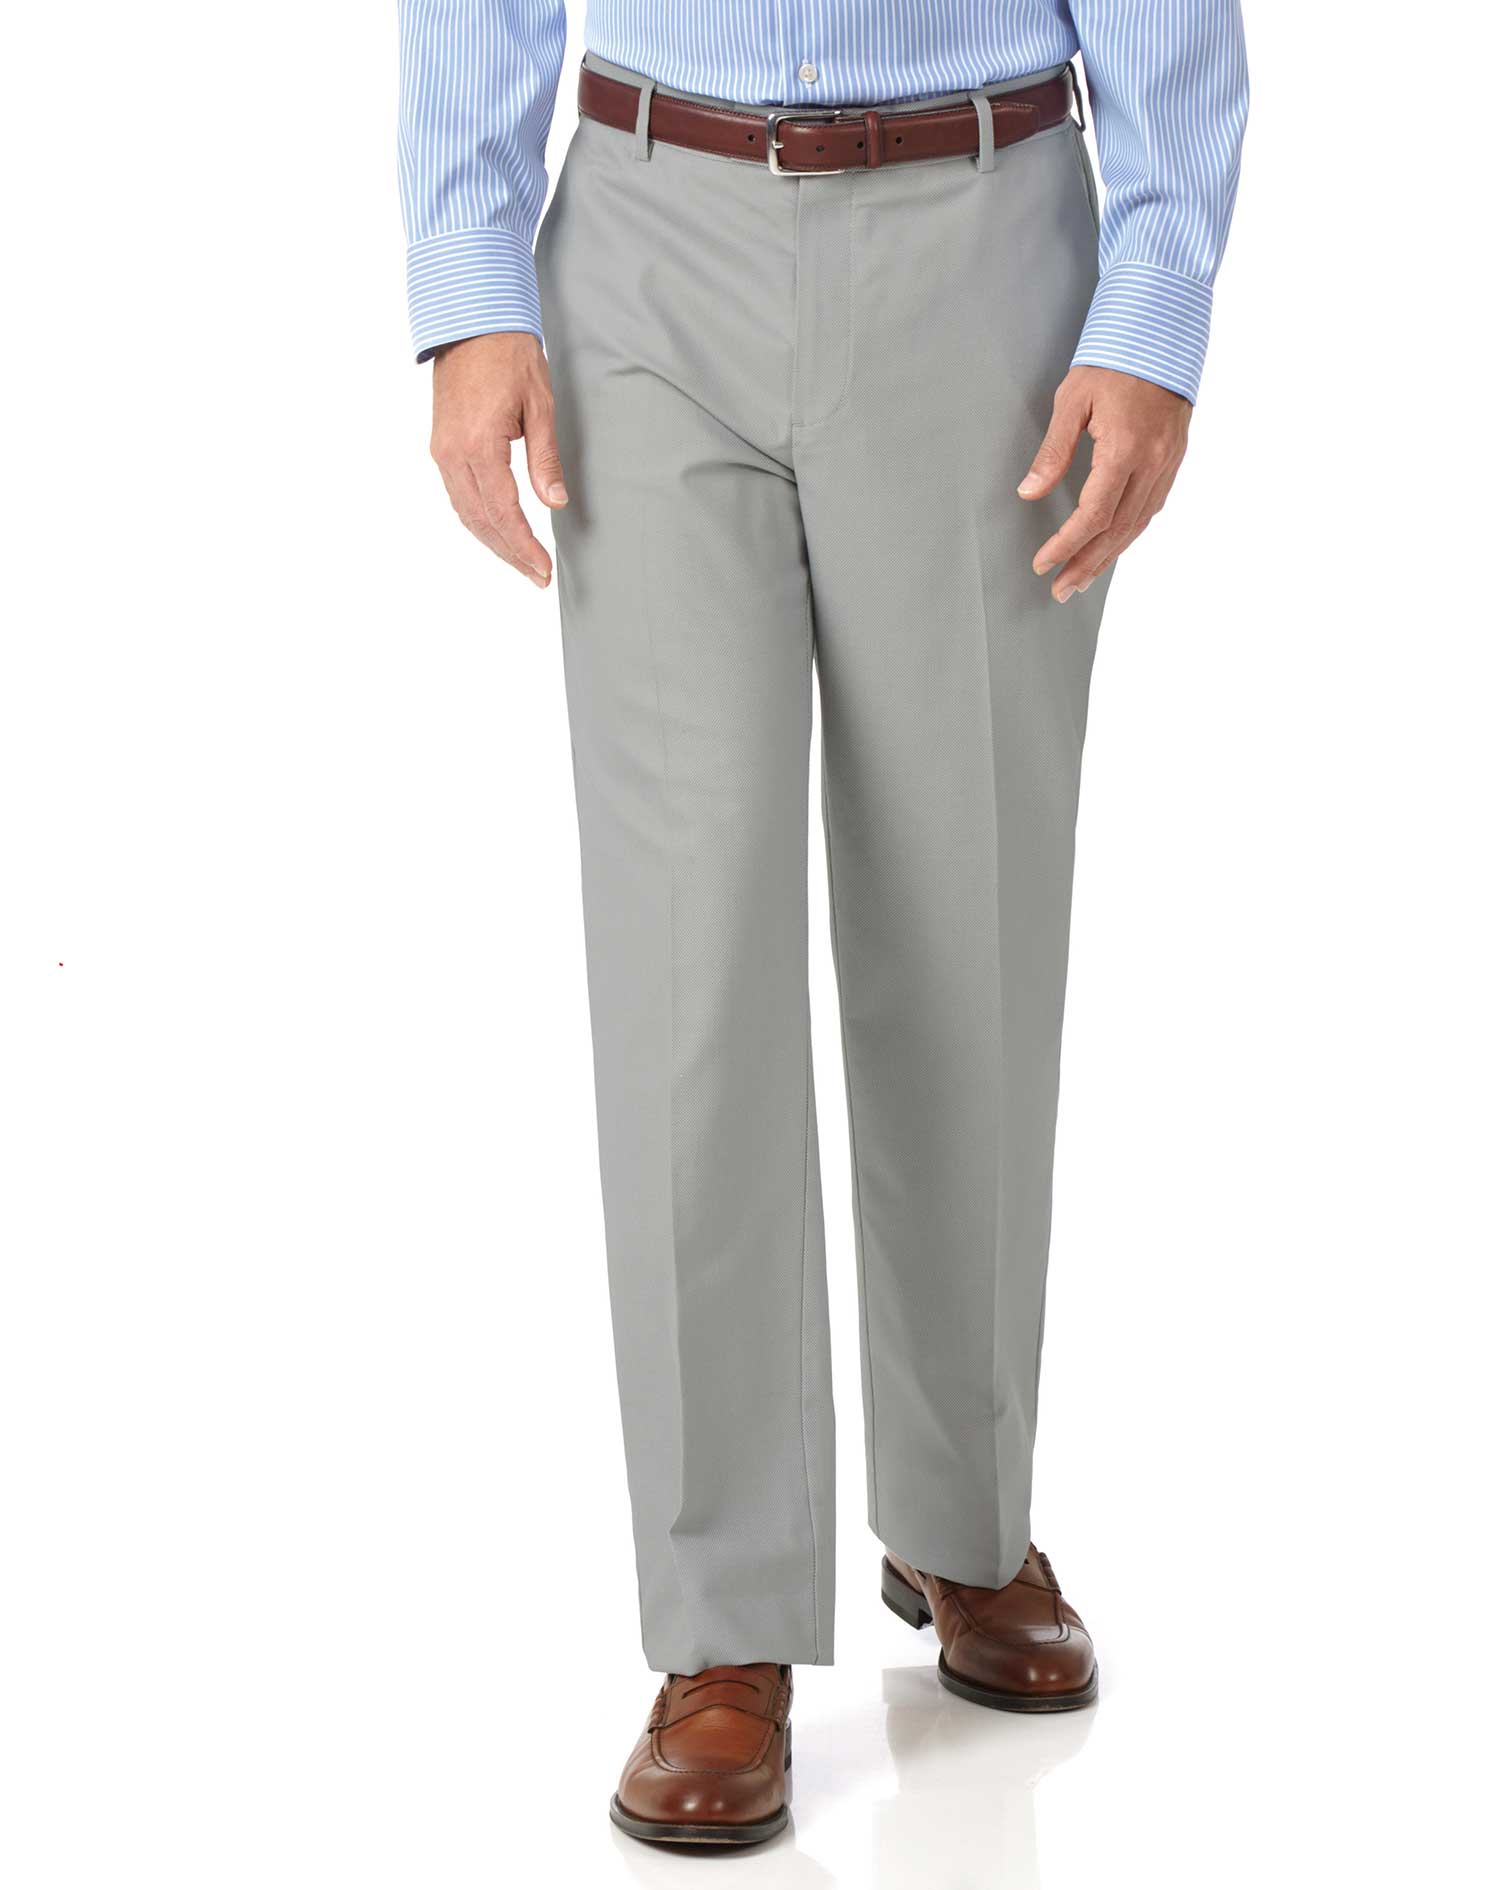 Silver Classic Fit Stretch Non-Iron Trousers Size W32 L34 by Charles Tyrwhitt